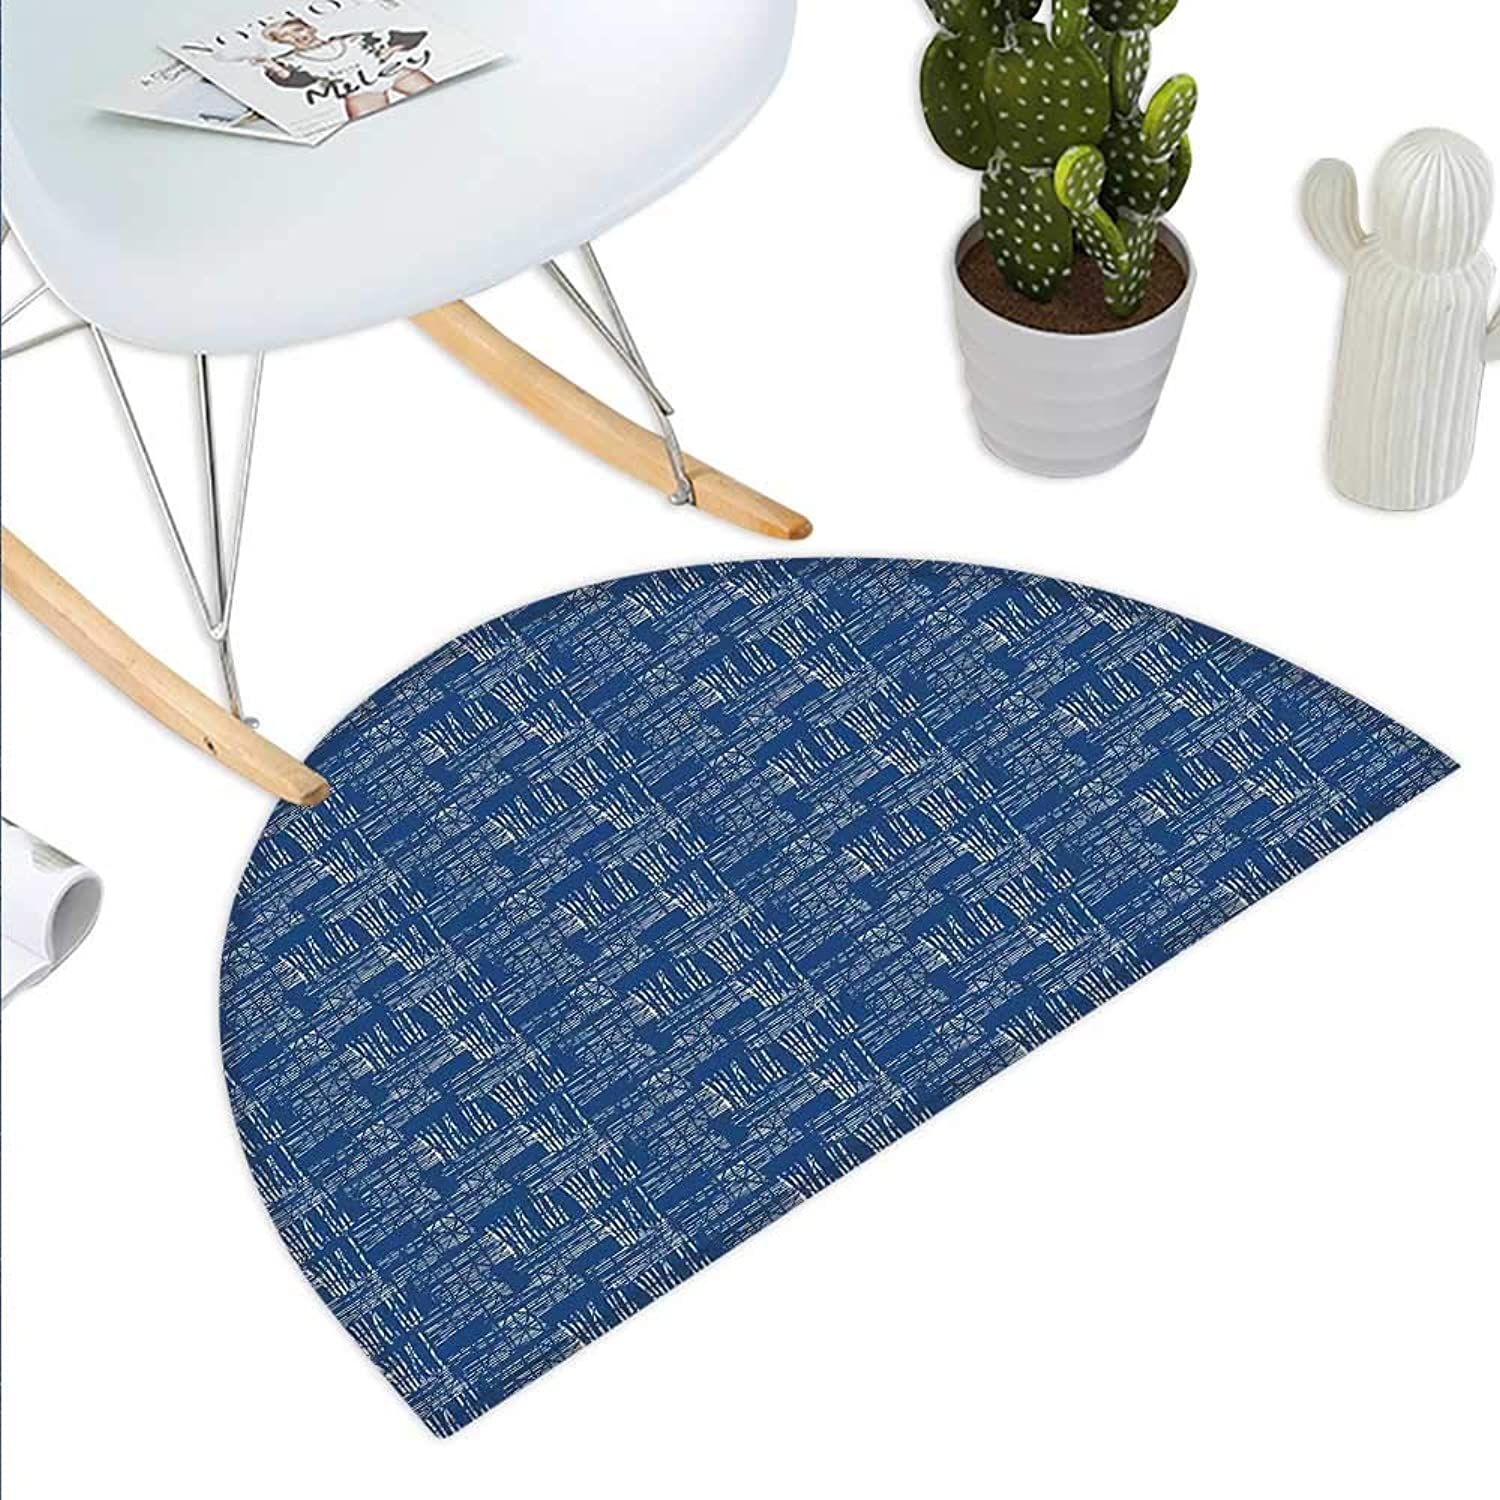 bluee and White Semicircle Doormat Watercolor Style Tie Dye Grid Indonesian Grunge Stripy Composition Halfmoon doormats H 23.6  xD 35.4  Cobalt bluee White